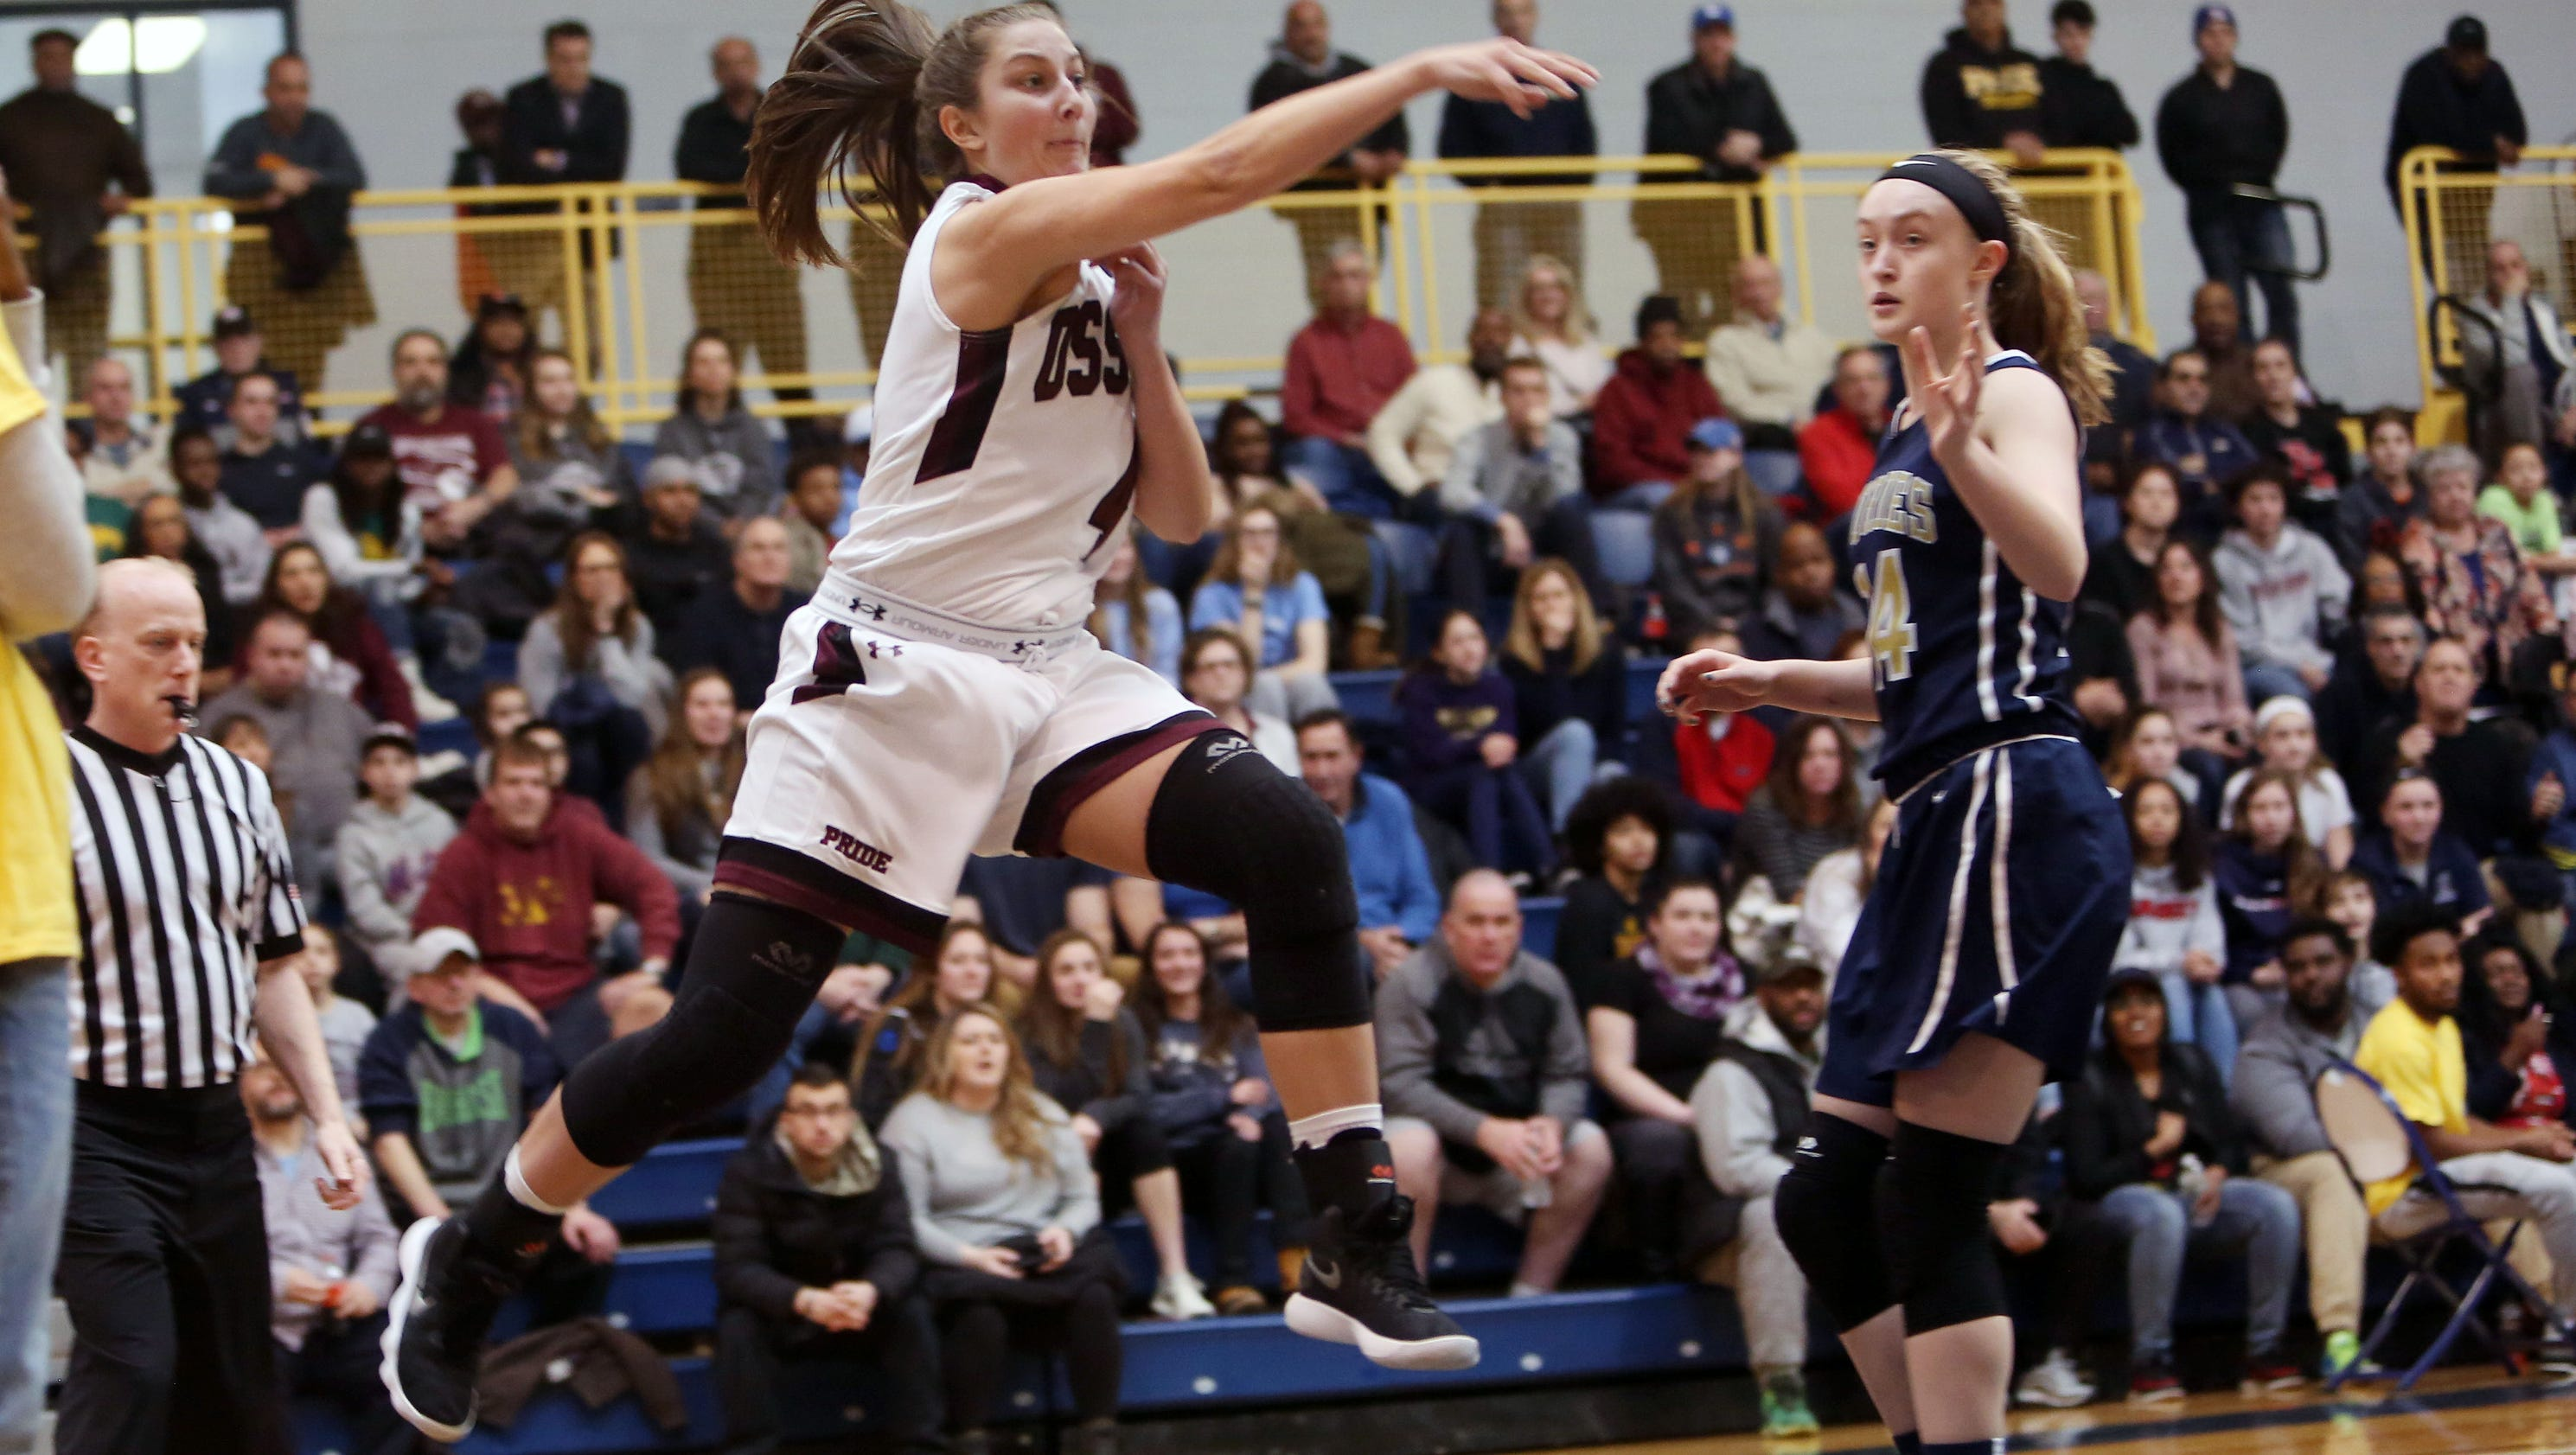 Girls basketball: Section 1 will add power league for 2018-19 season